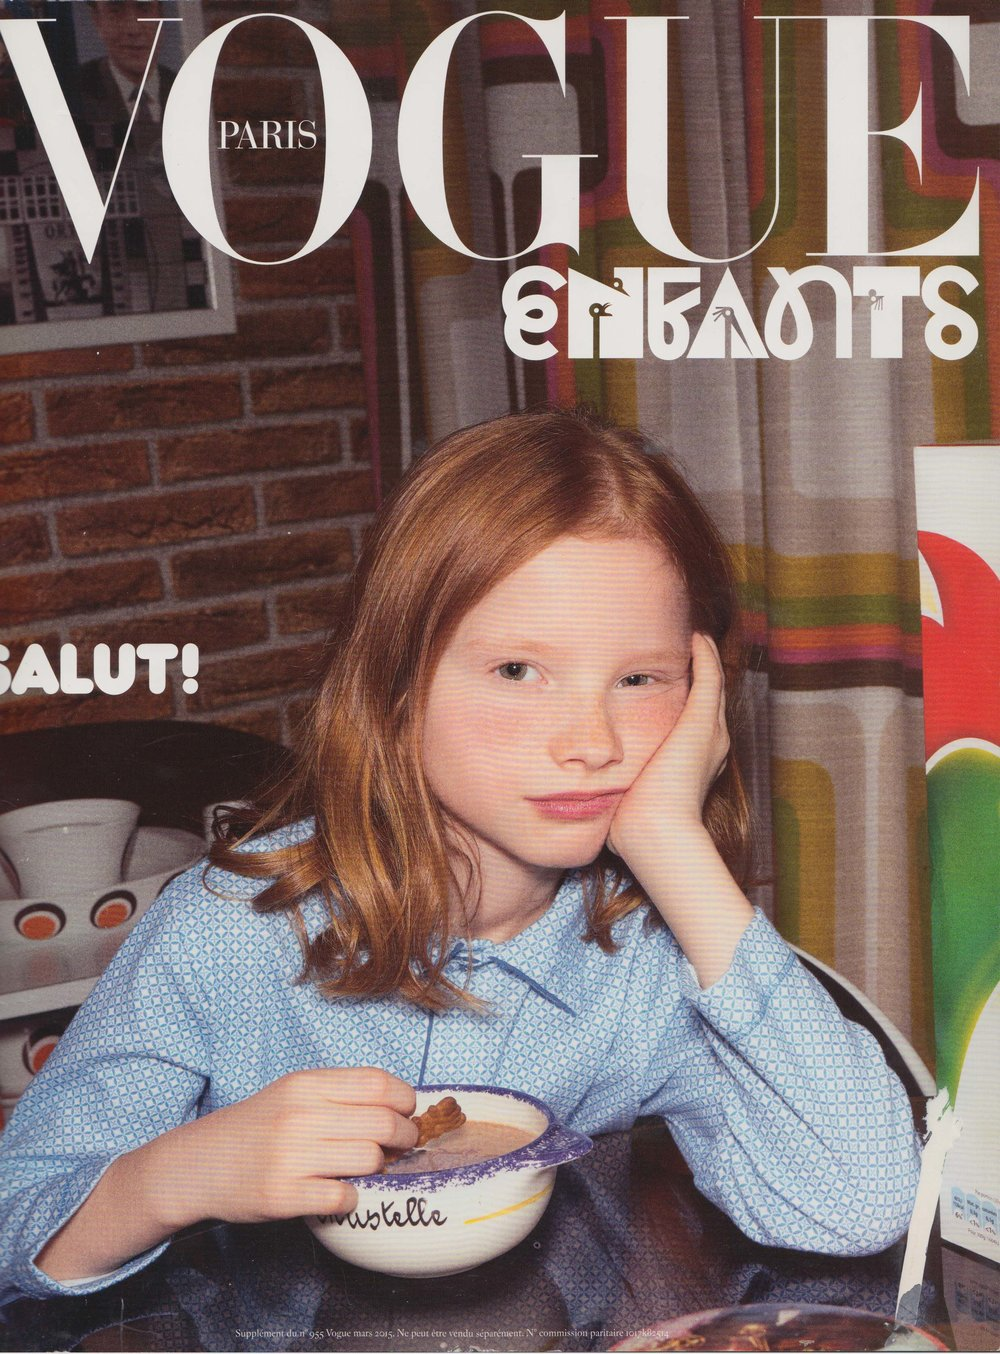 vogue_enfant_titel.jpg